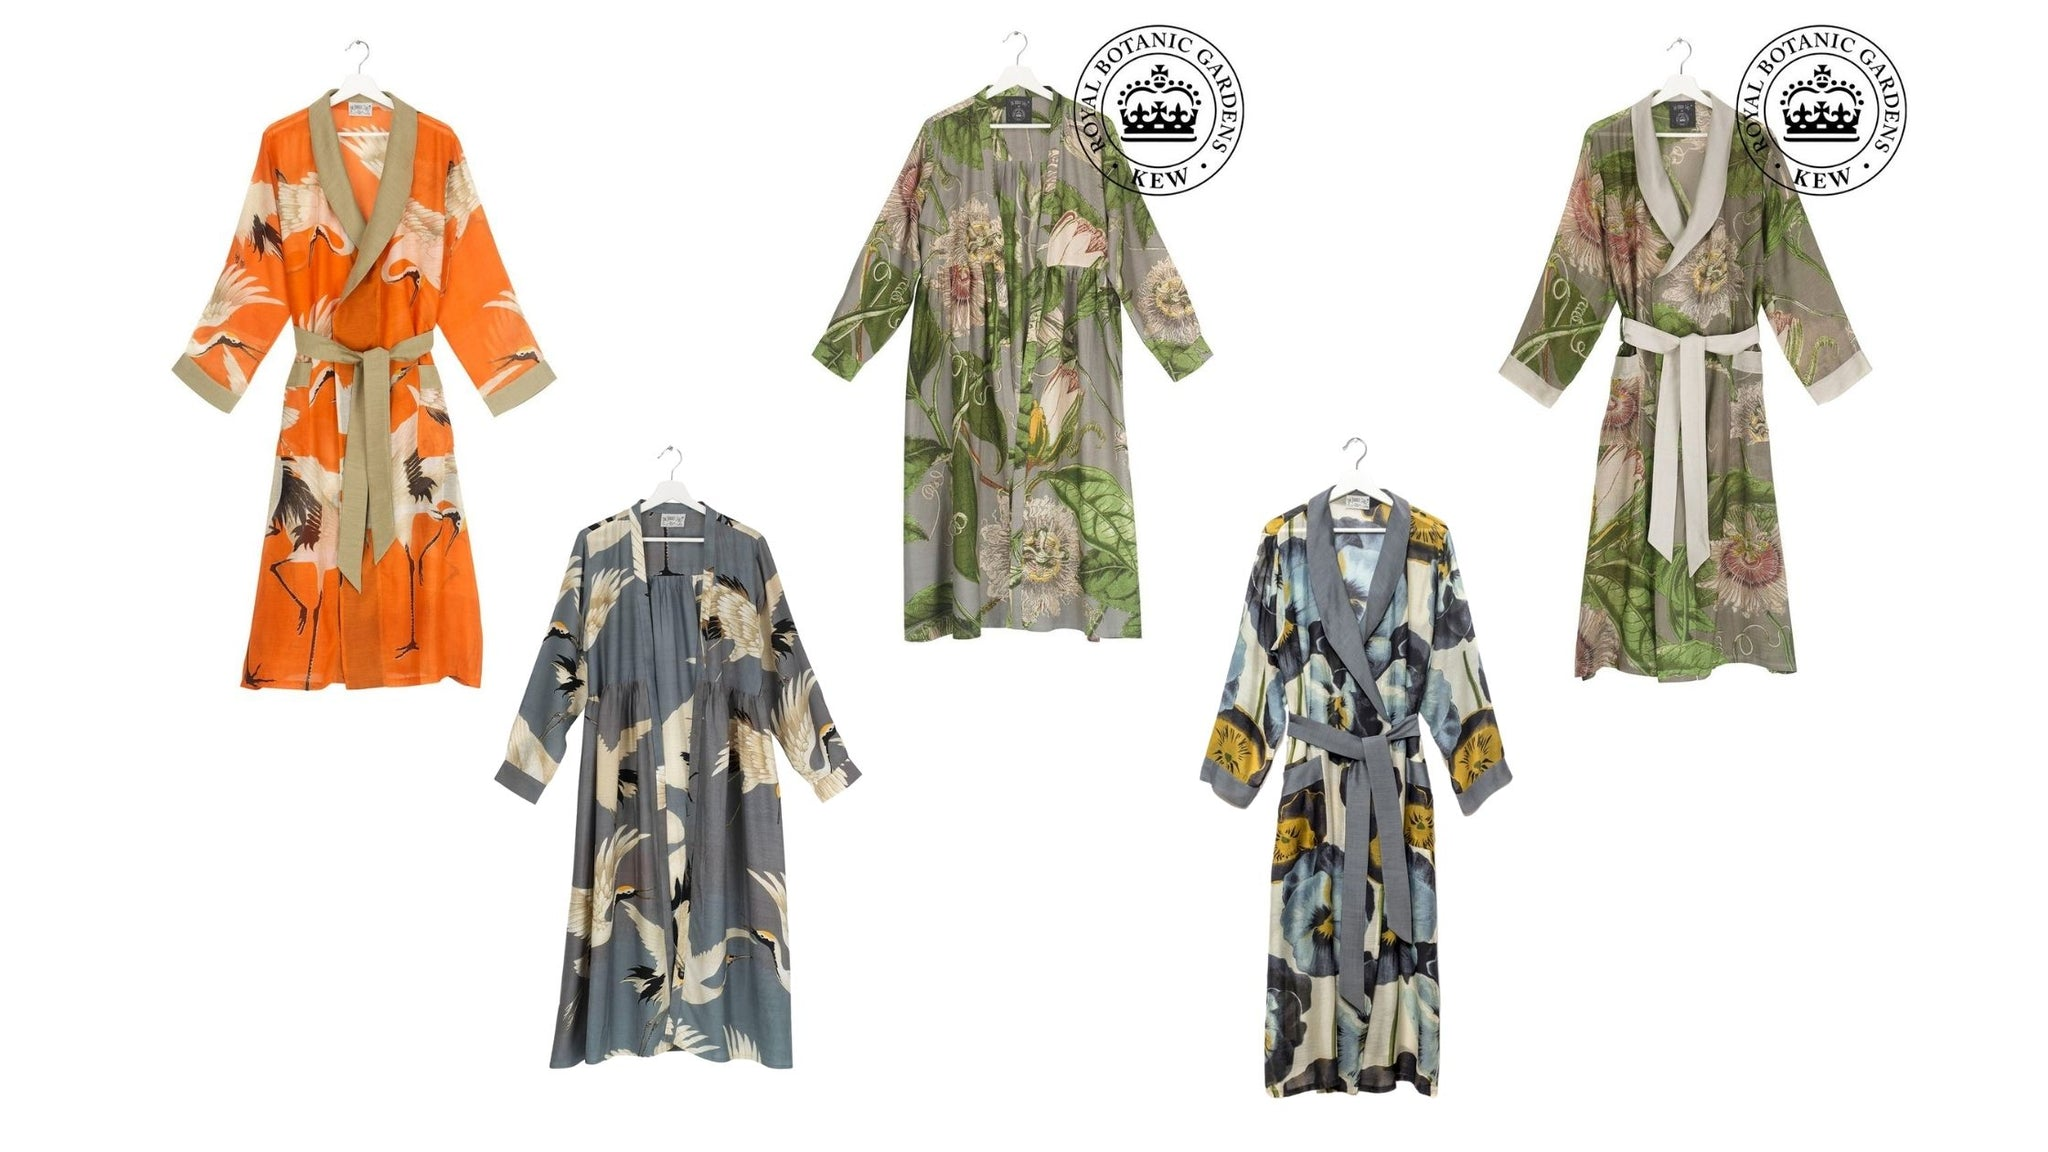 100 Stars Duster Coats and Dressing Gowns